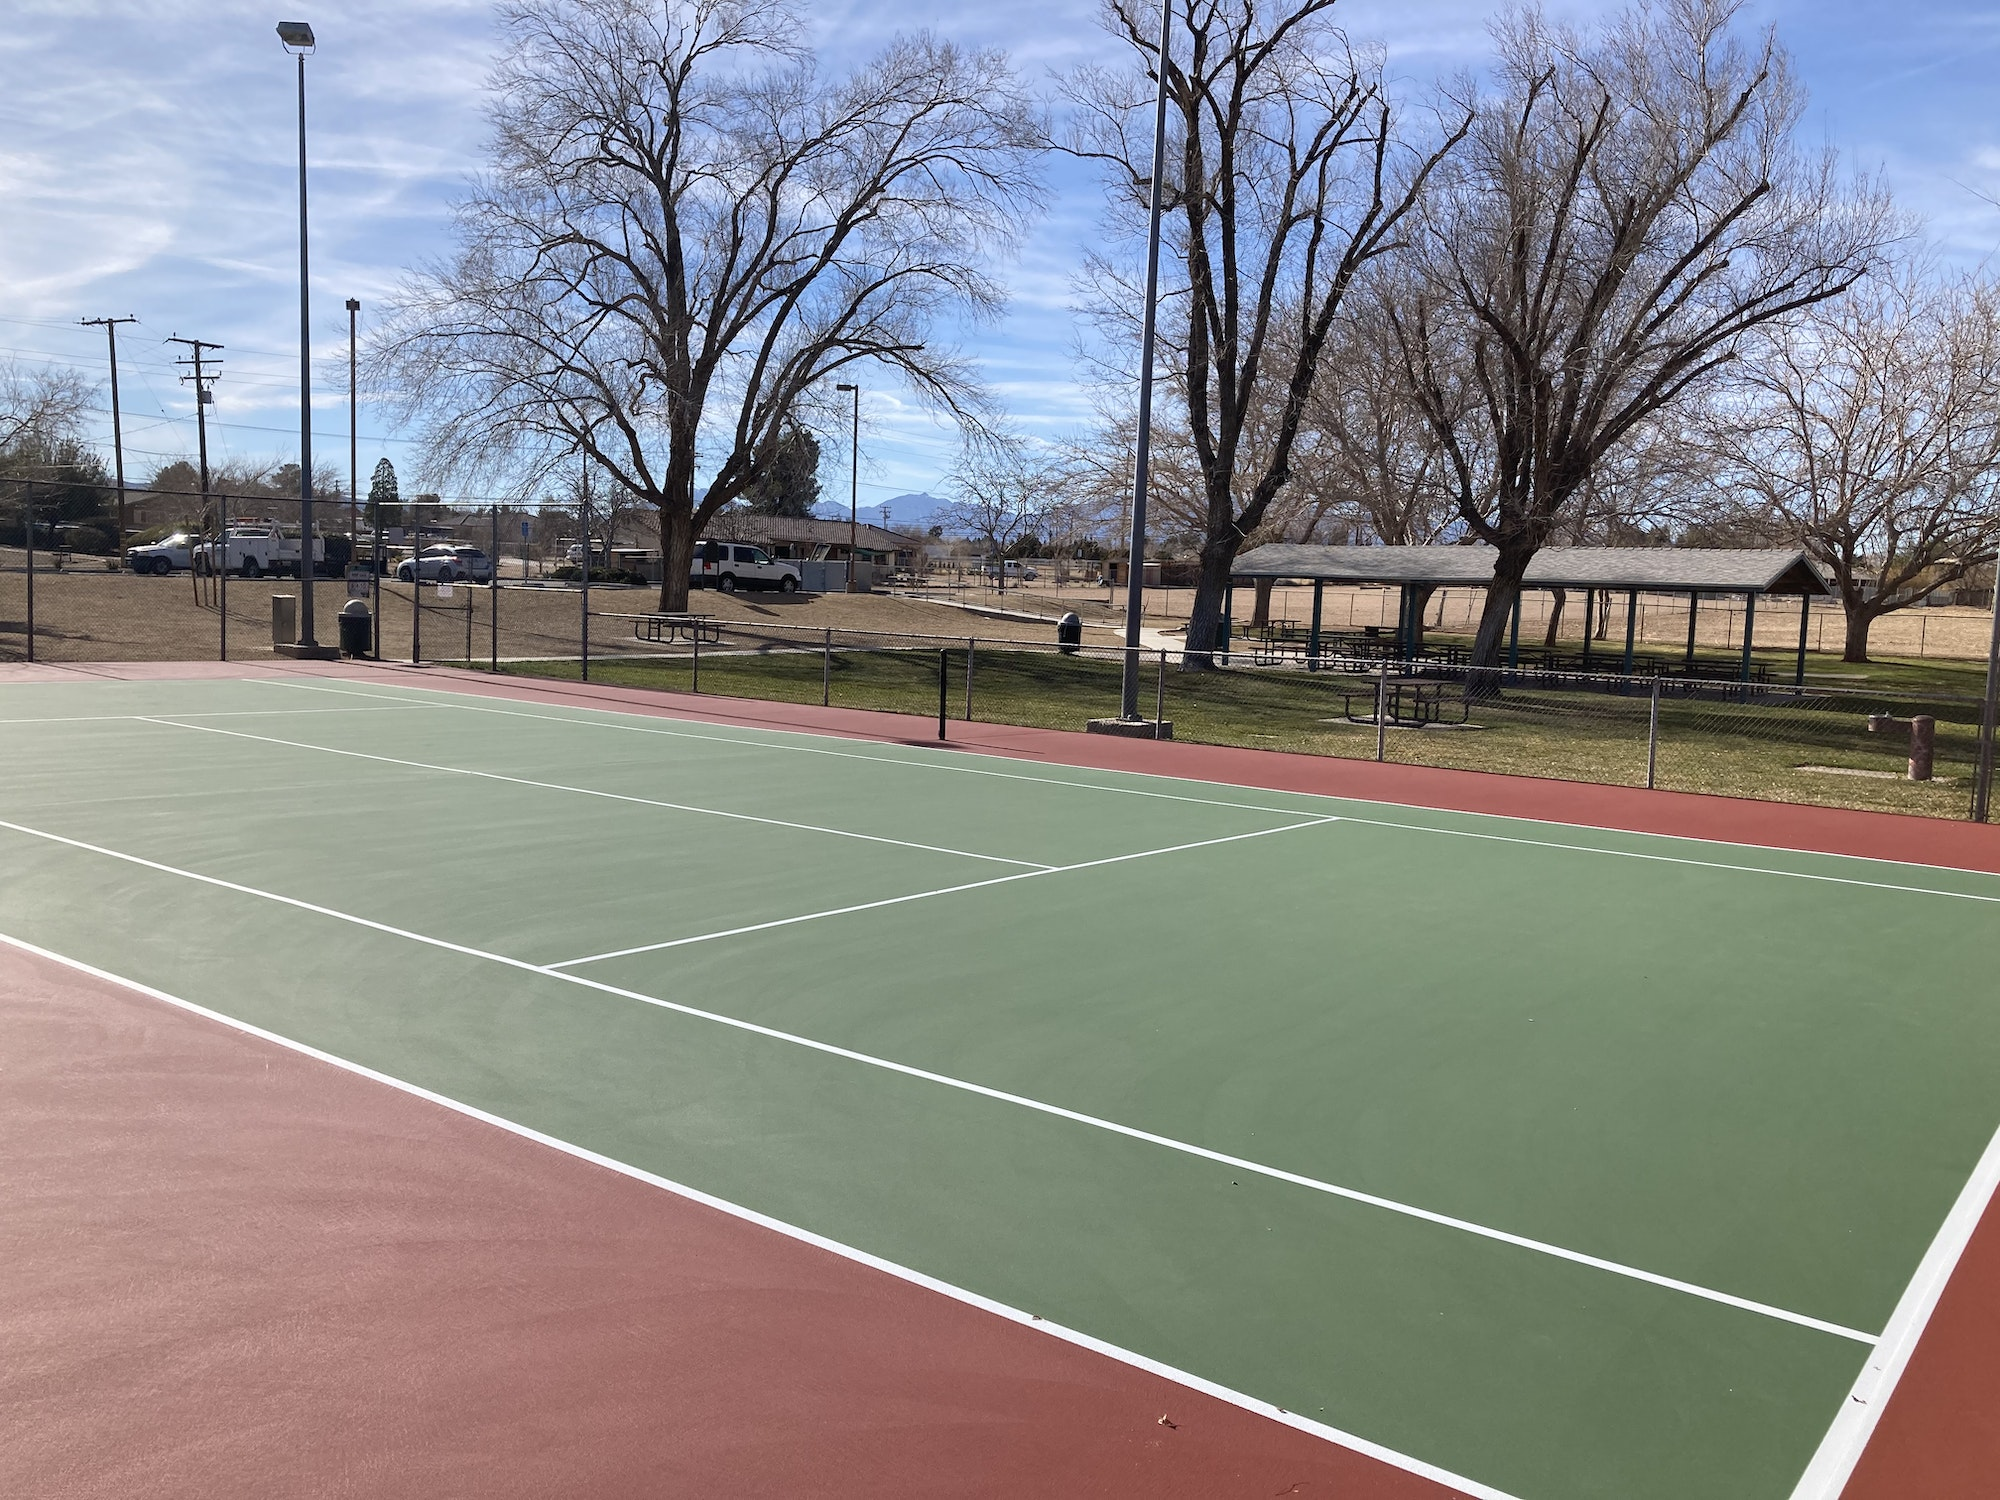 May contain: tennis court, sport, and sports